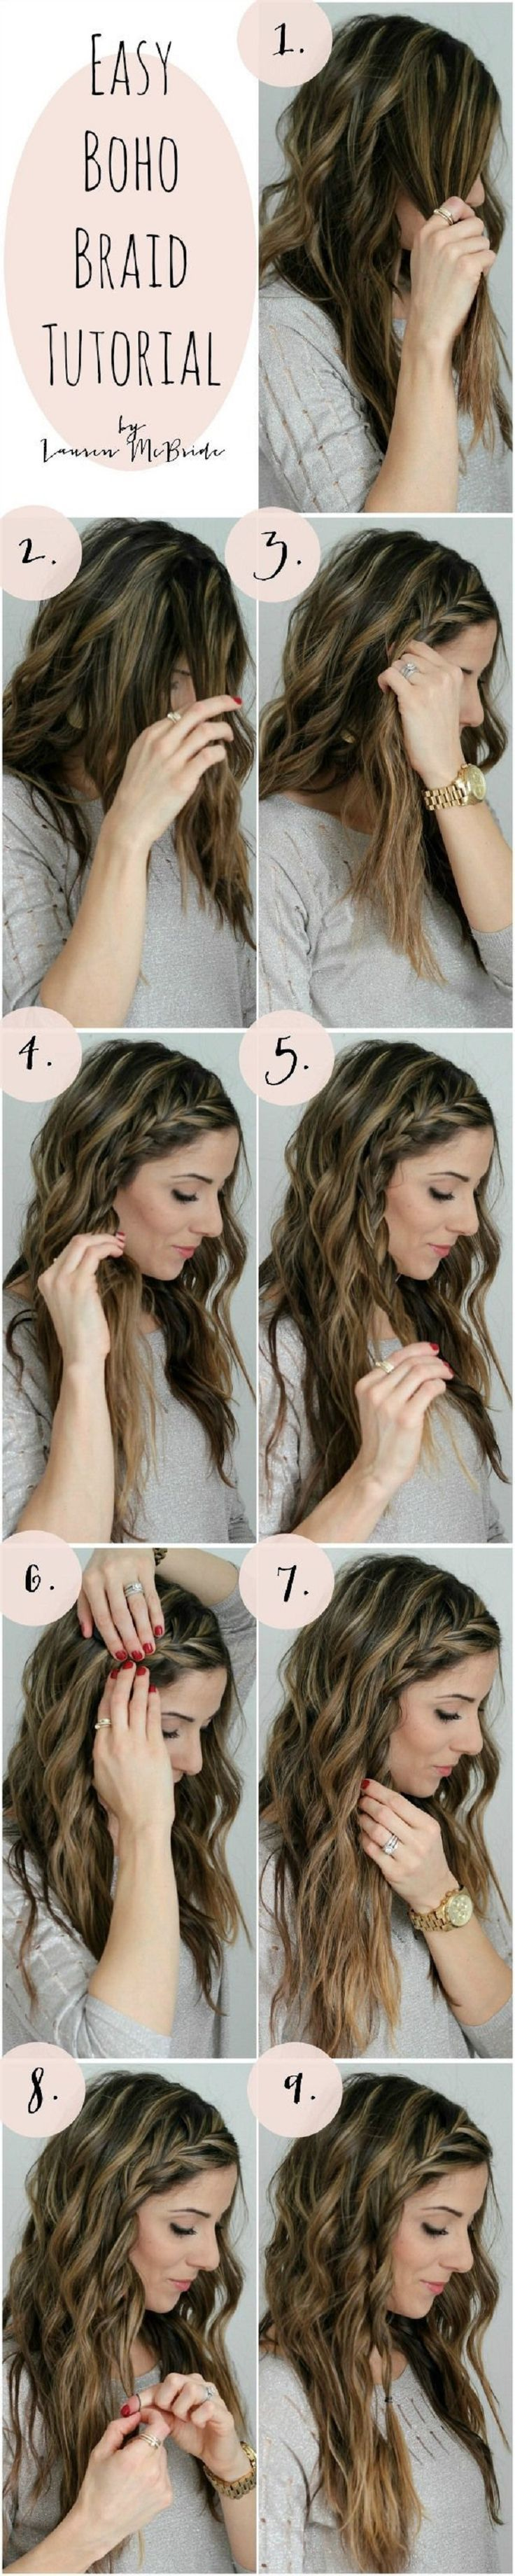 10 Cute And Simple Hair Style Ideas For Graduation Hair Styles Long Hair Styles Cool Hairstyles